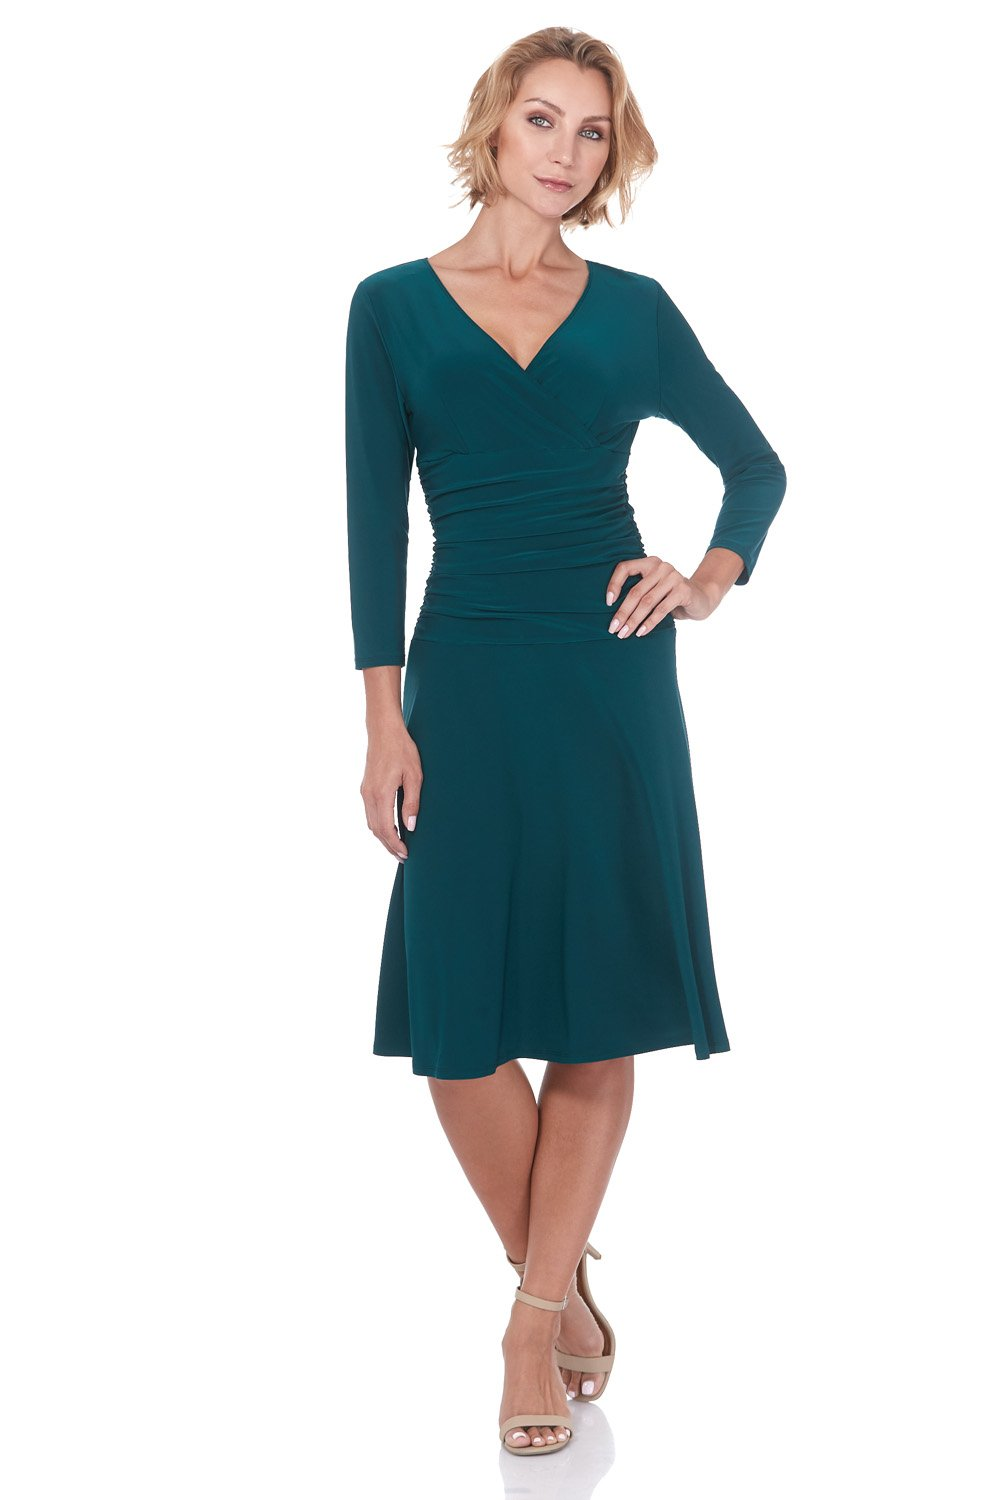 Rekucci Women's Slimming 3/4 Sleeve Fit-and-Flare Crossover Tummy Control Dress (12,Hunter Green)